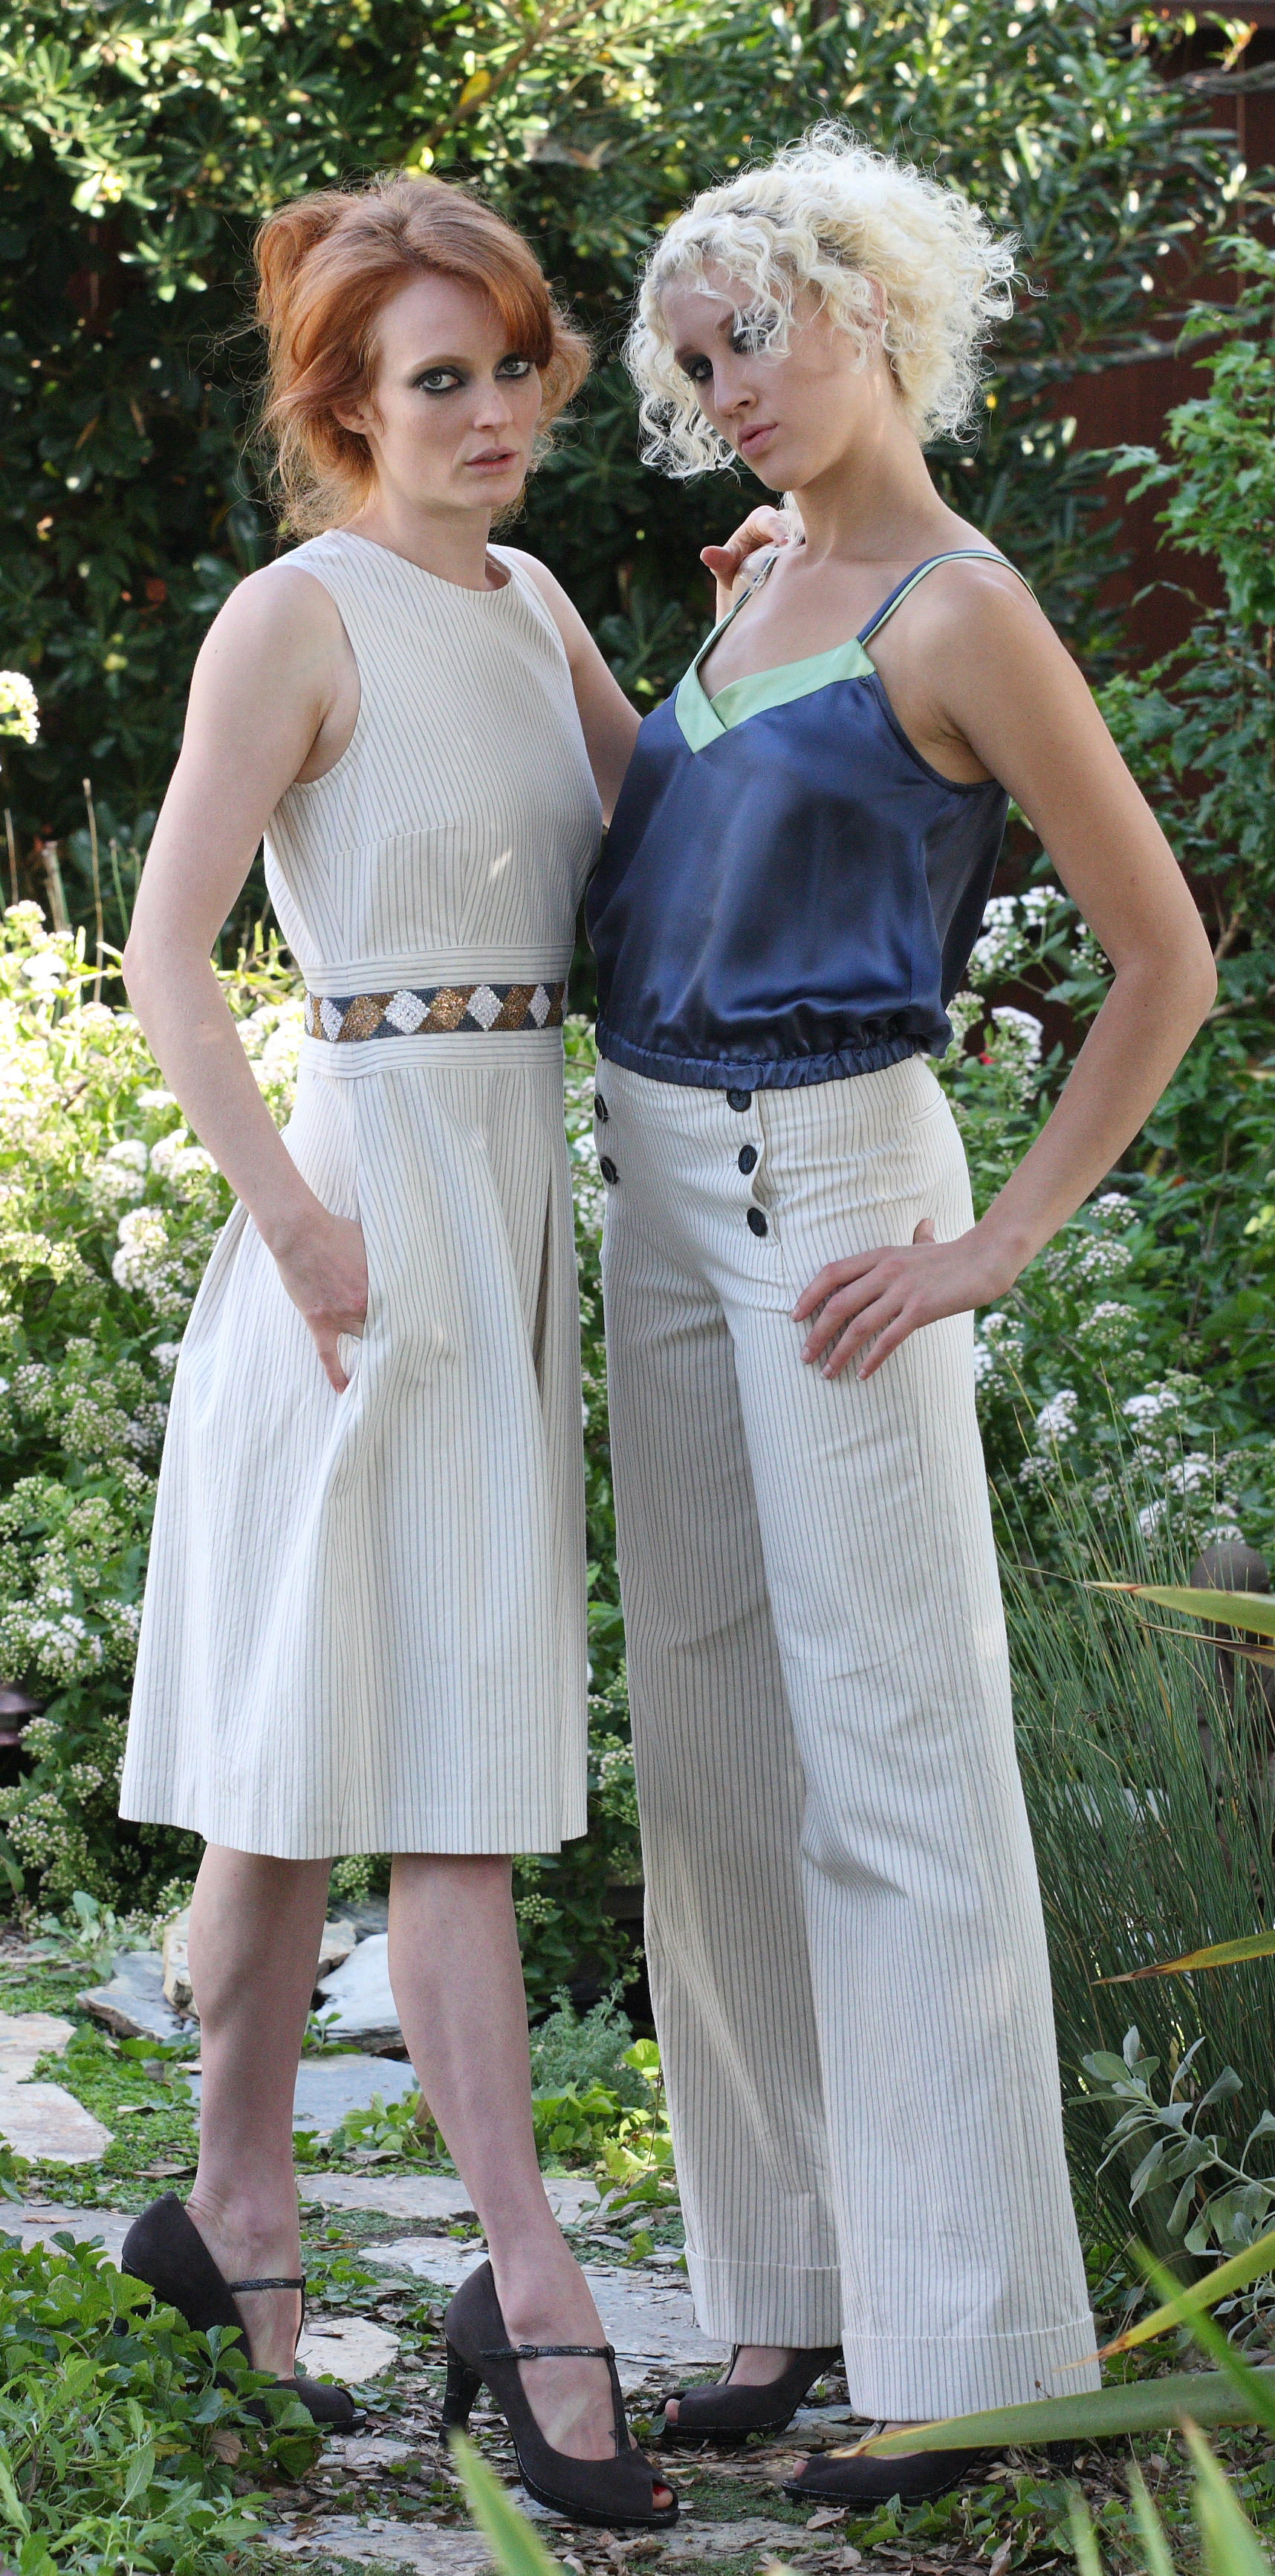 Jewel Pleat Dress in Pinstriped Italian Cotton Twill w/ Beaded Waist  Double Strap V-Cami in Blue Silk Charmeuse   Cuffed Wide Leg Sailor Pant in Pinstriped Italian cotton Twill